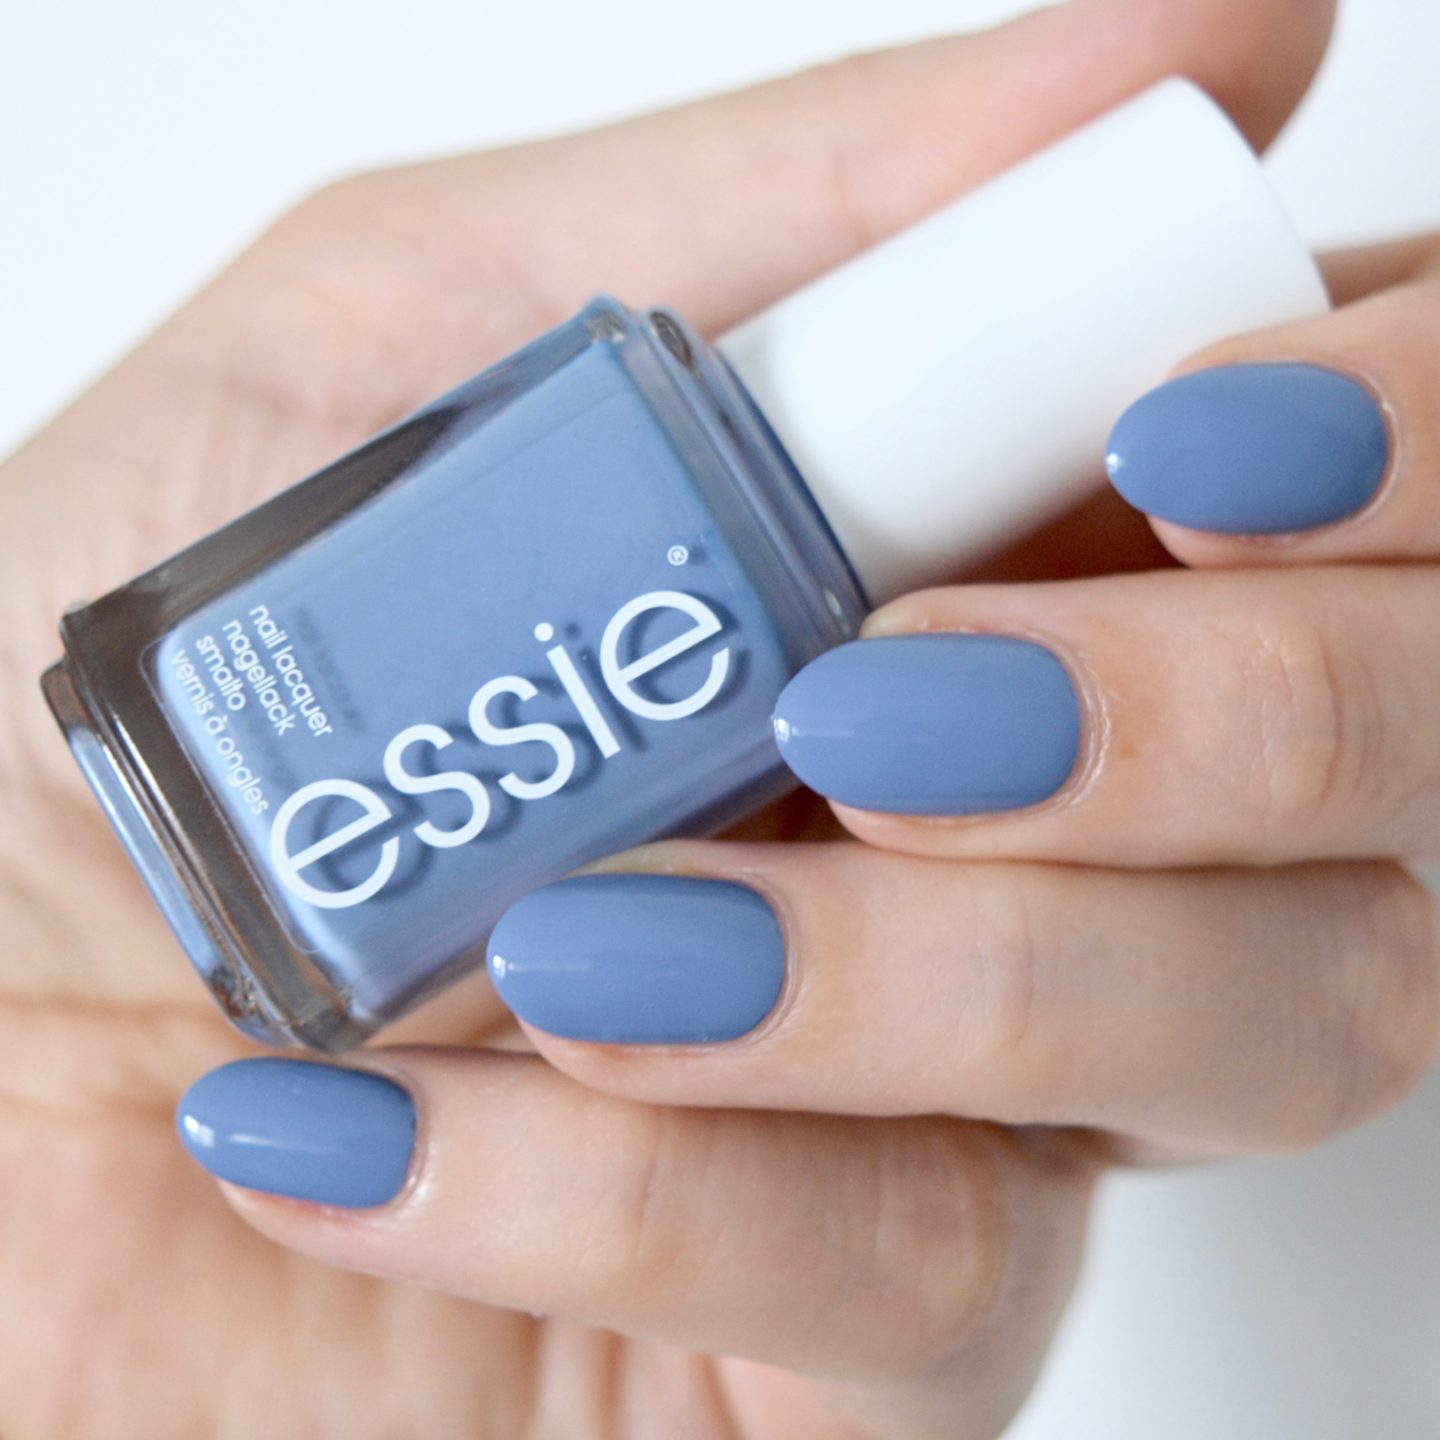 Essie Fall 2017 collection - As If!